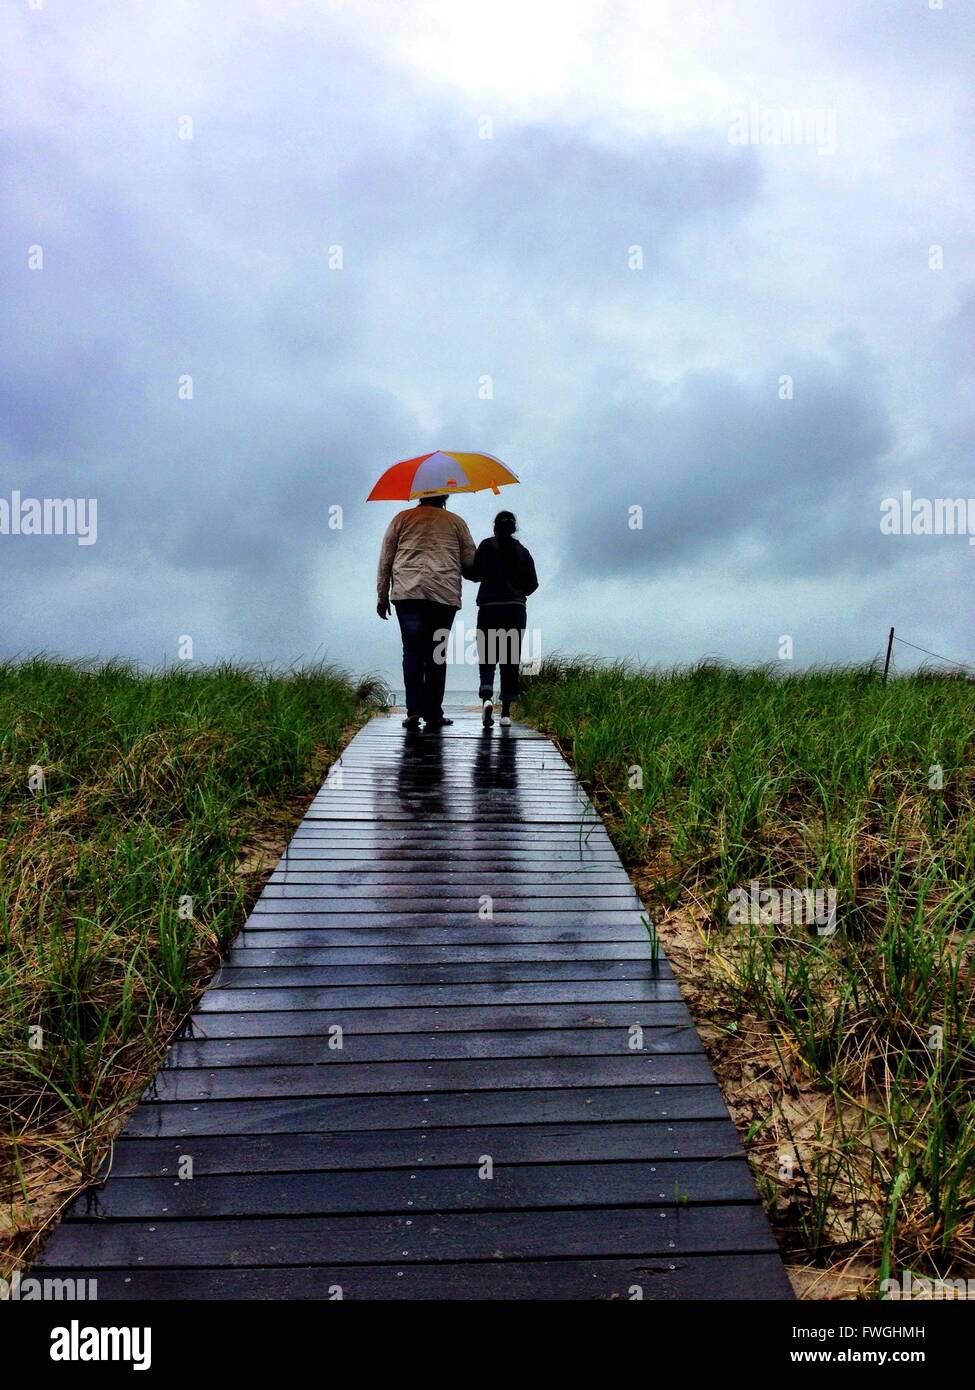 Rear View Of Couple Walking On Boardwalk - Stock Image